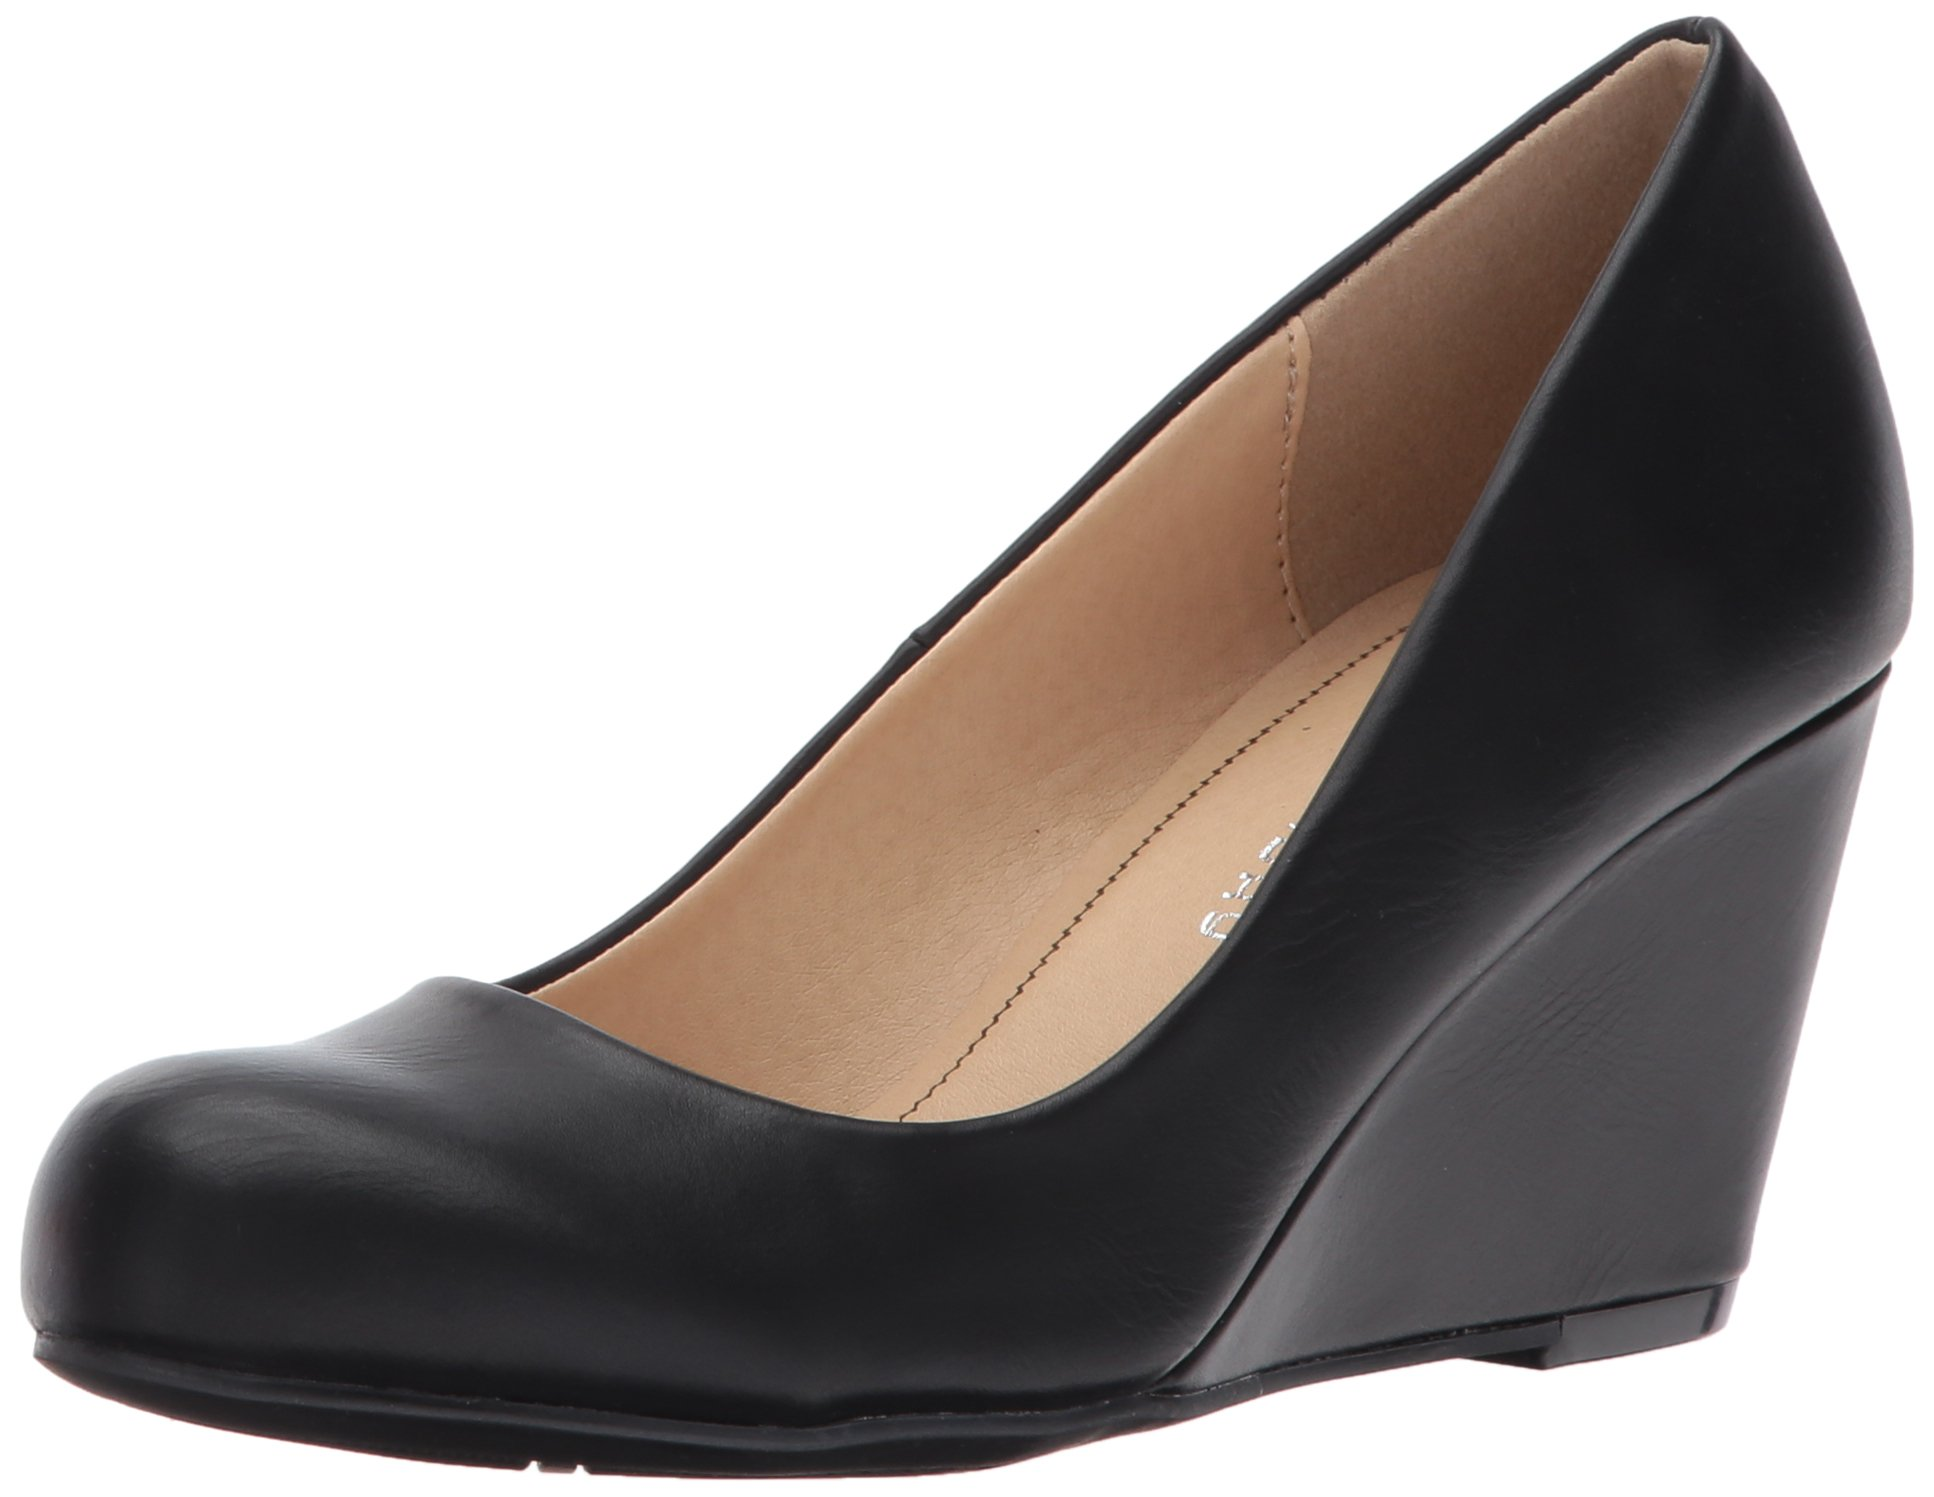 Cl by Chinese Laundry Women's Nima Wedge Pump, Black Smooth, 8 M US